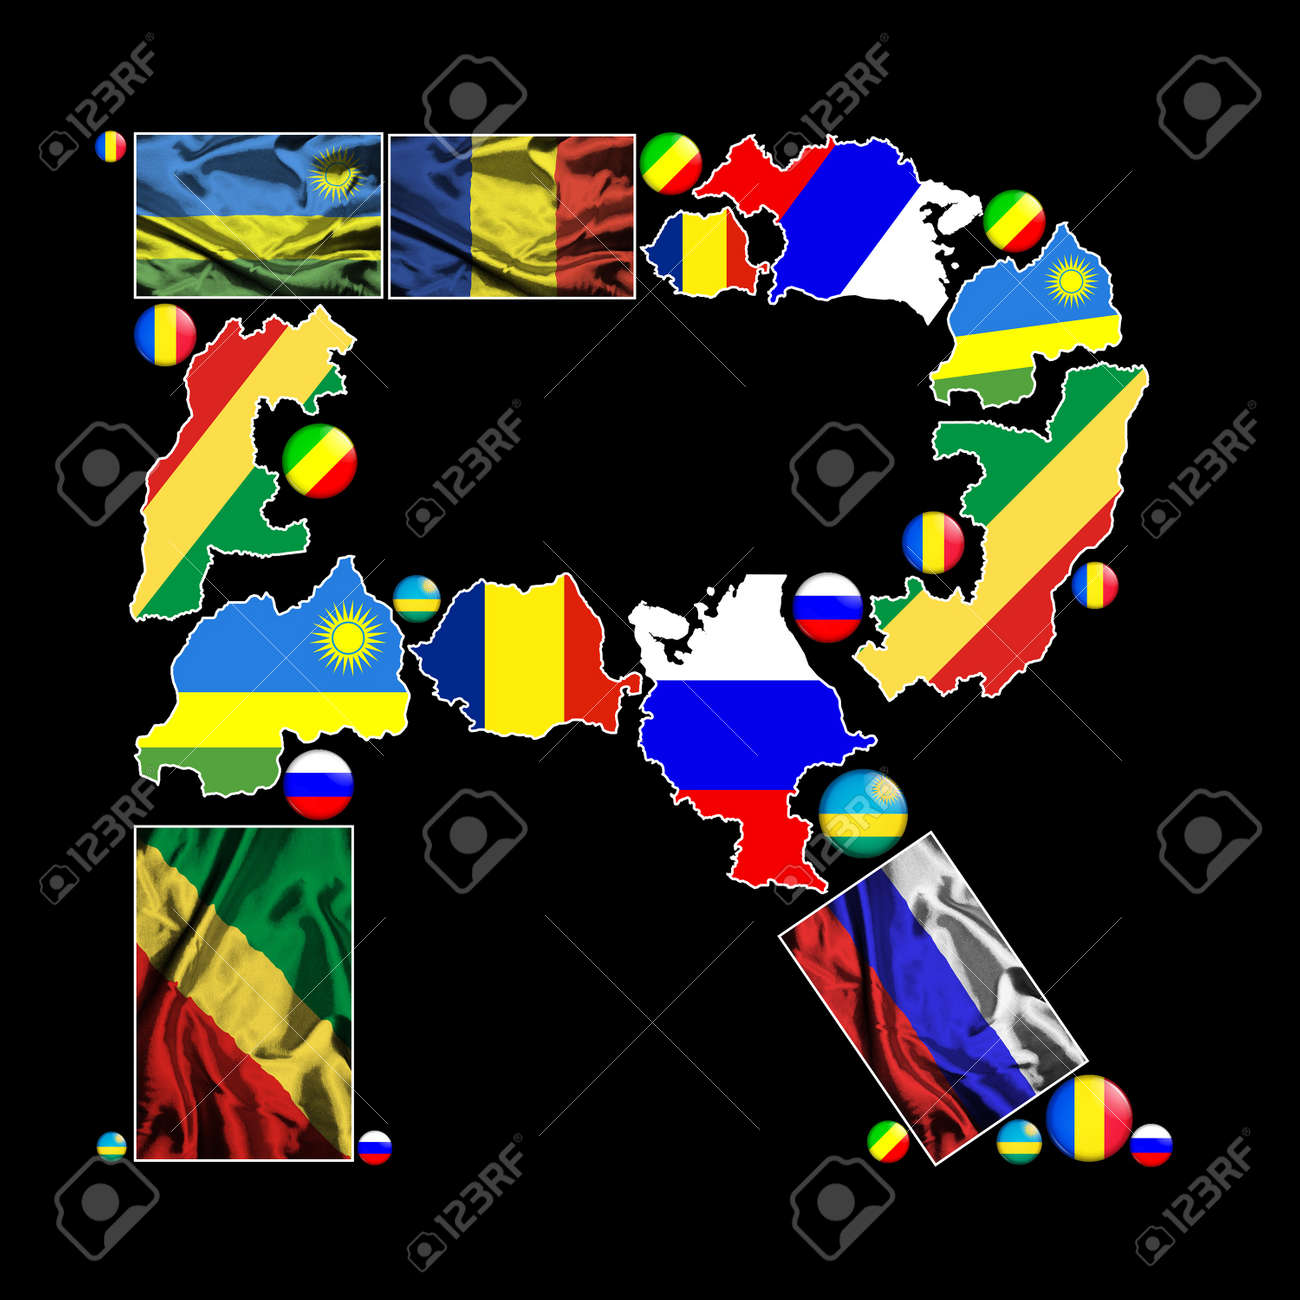 Flag maps flag badges and fabric flags of all the countries stock flag maps flag badges and fabric flags of all the countries in the world starting gumiabroncs Choice Image